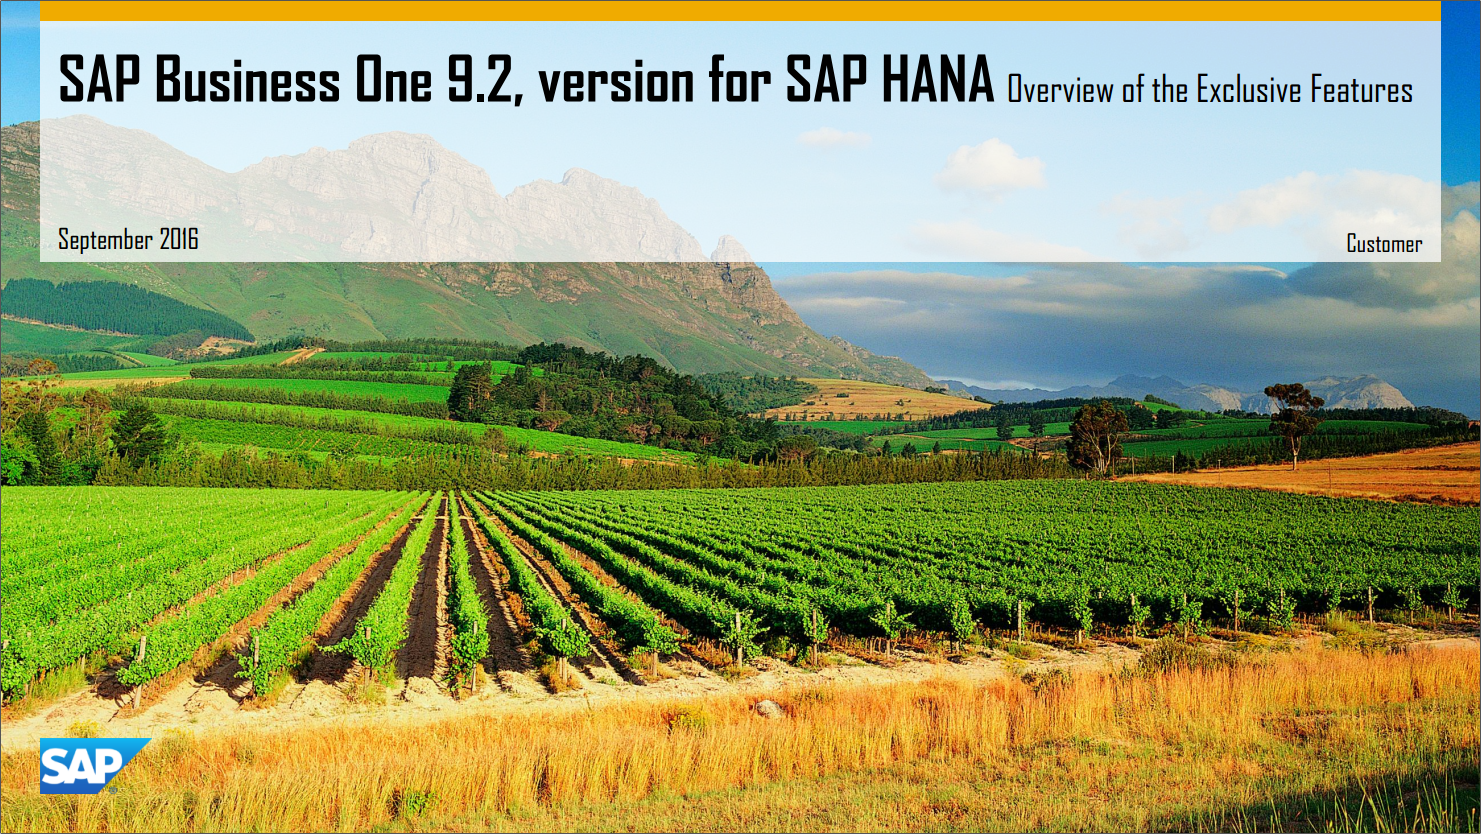 SAP Business One on Hana 9.2 Exclusive Features